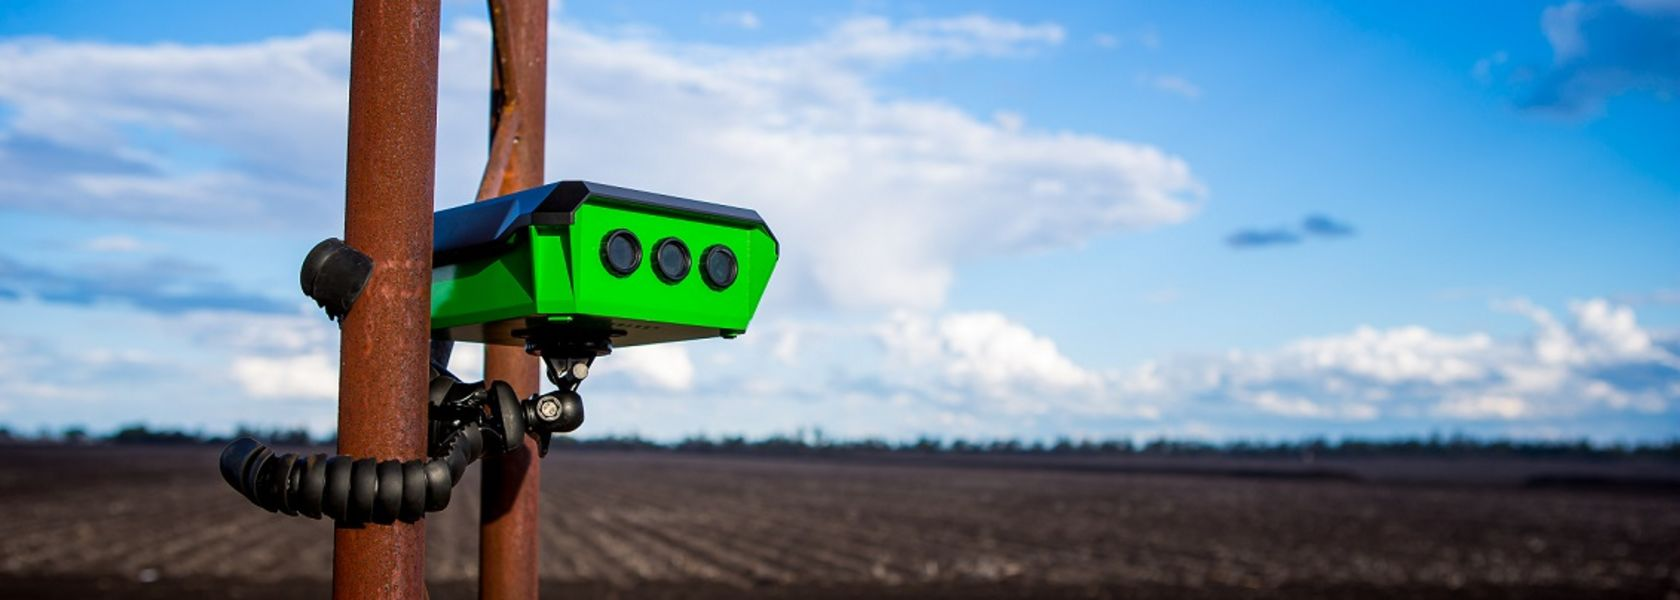 FieldMicro launches farming automation system